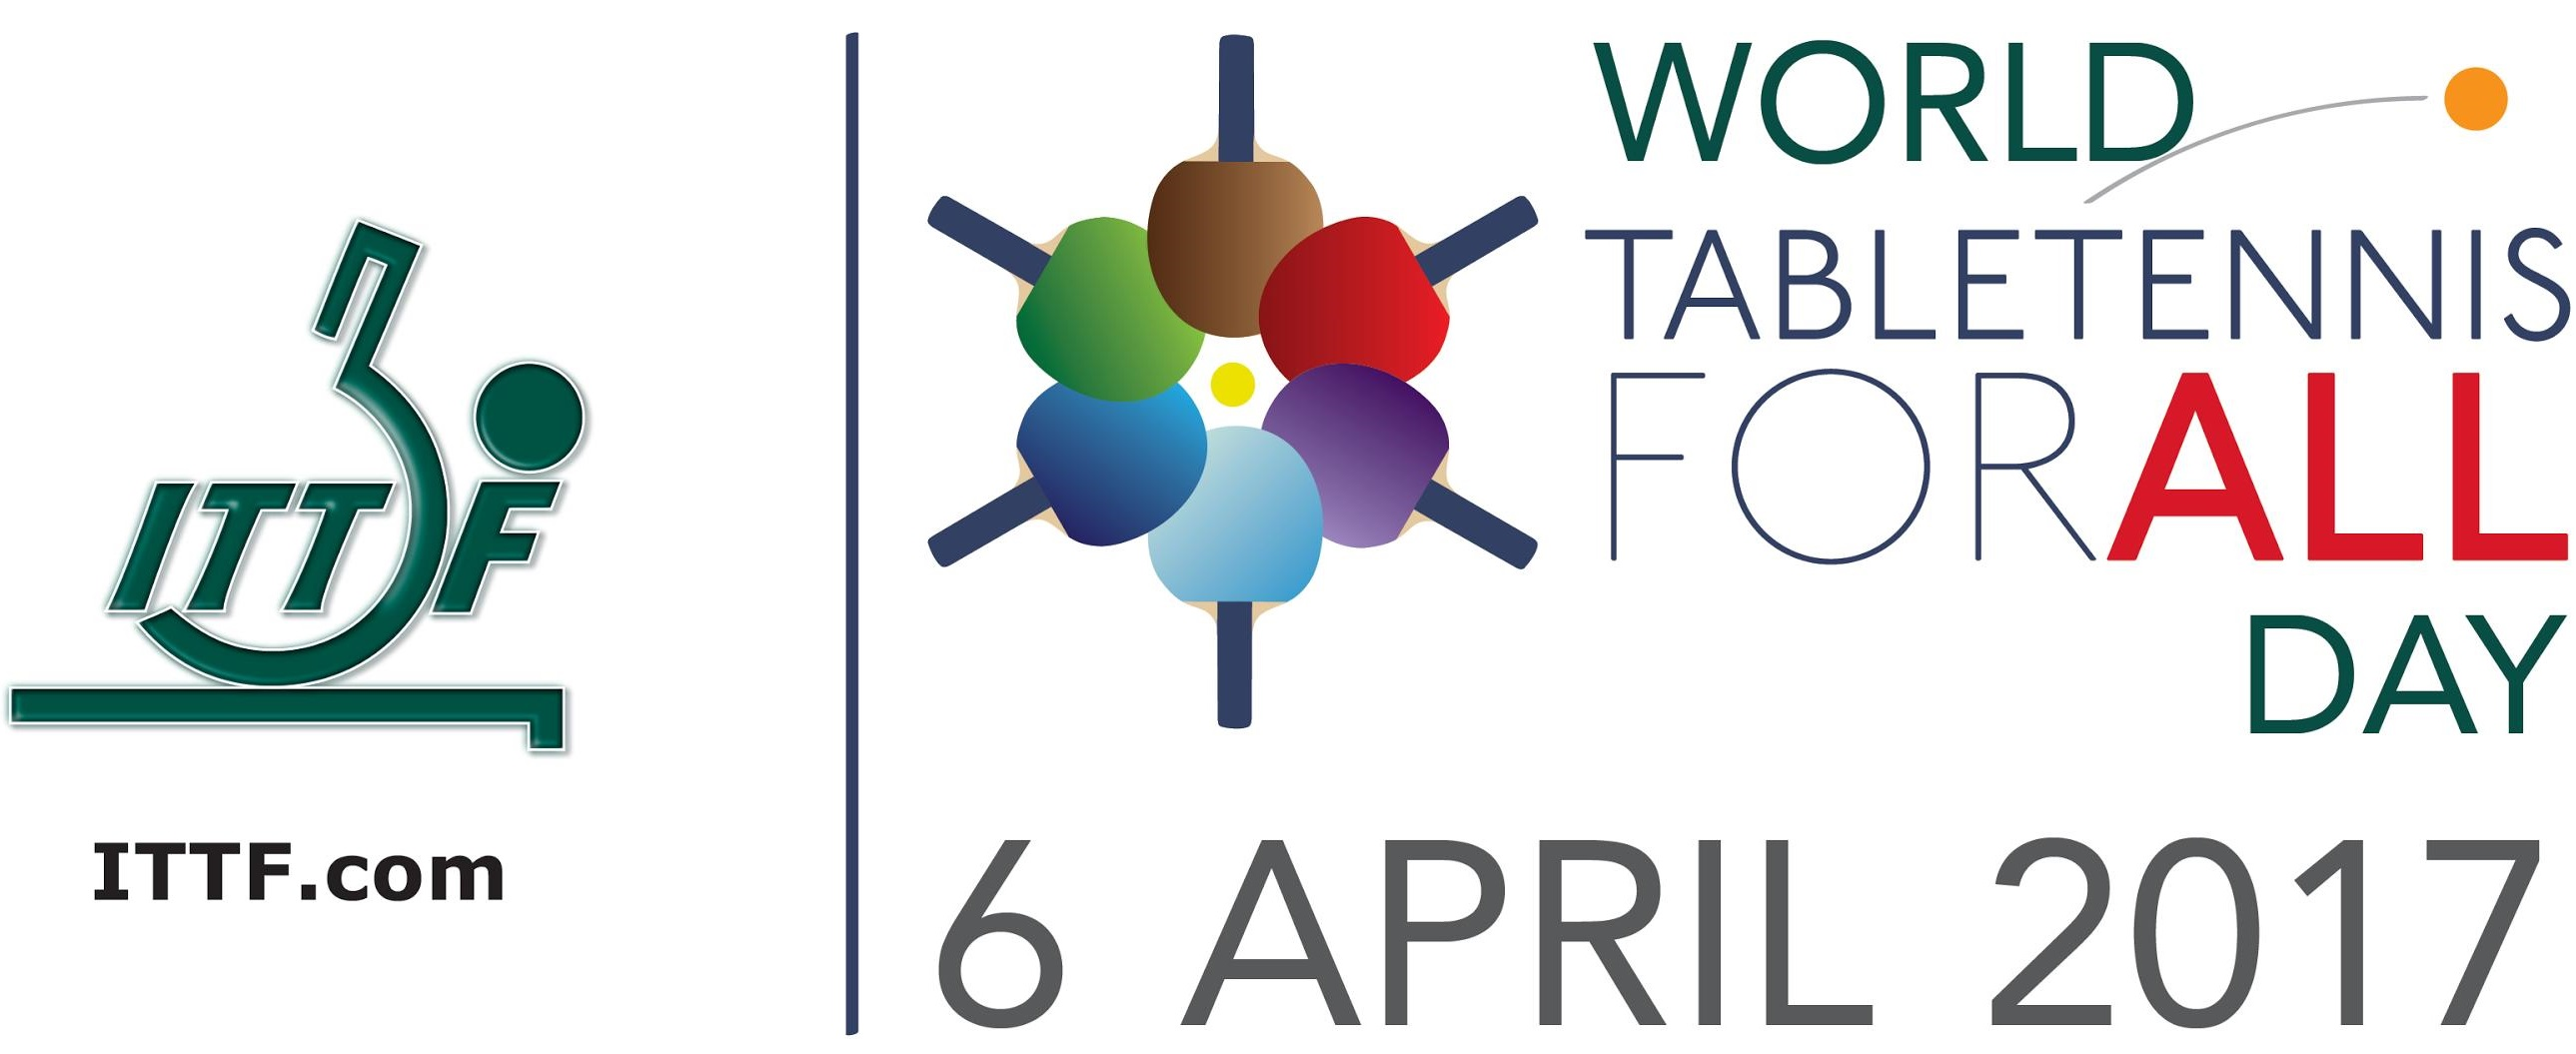 World Table Tennis Day